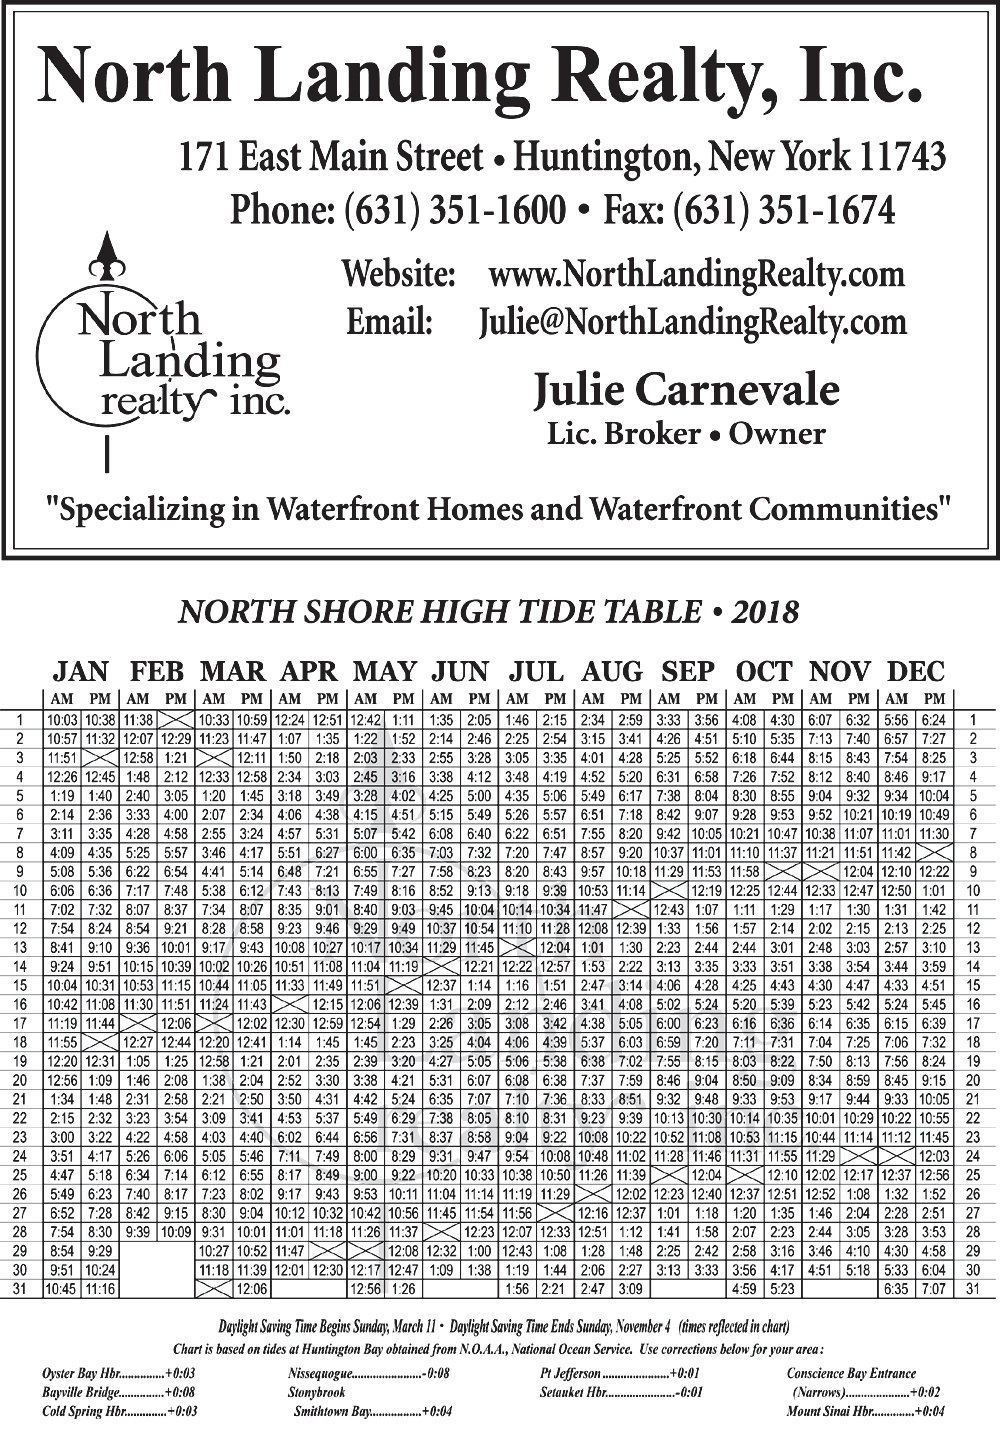 Print Your North Shore Tide Chart For 2018 Here